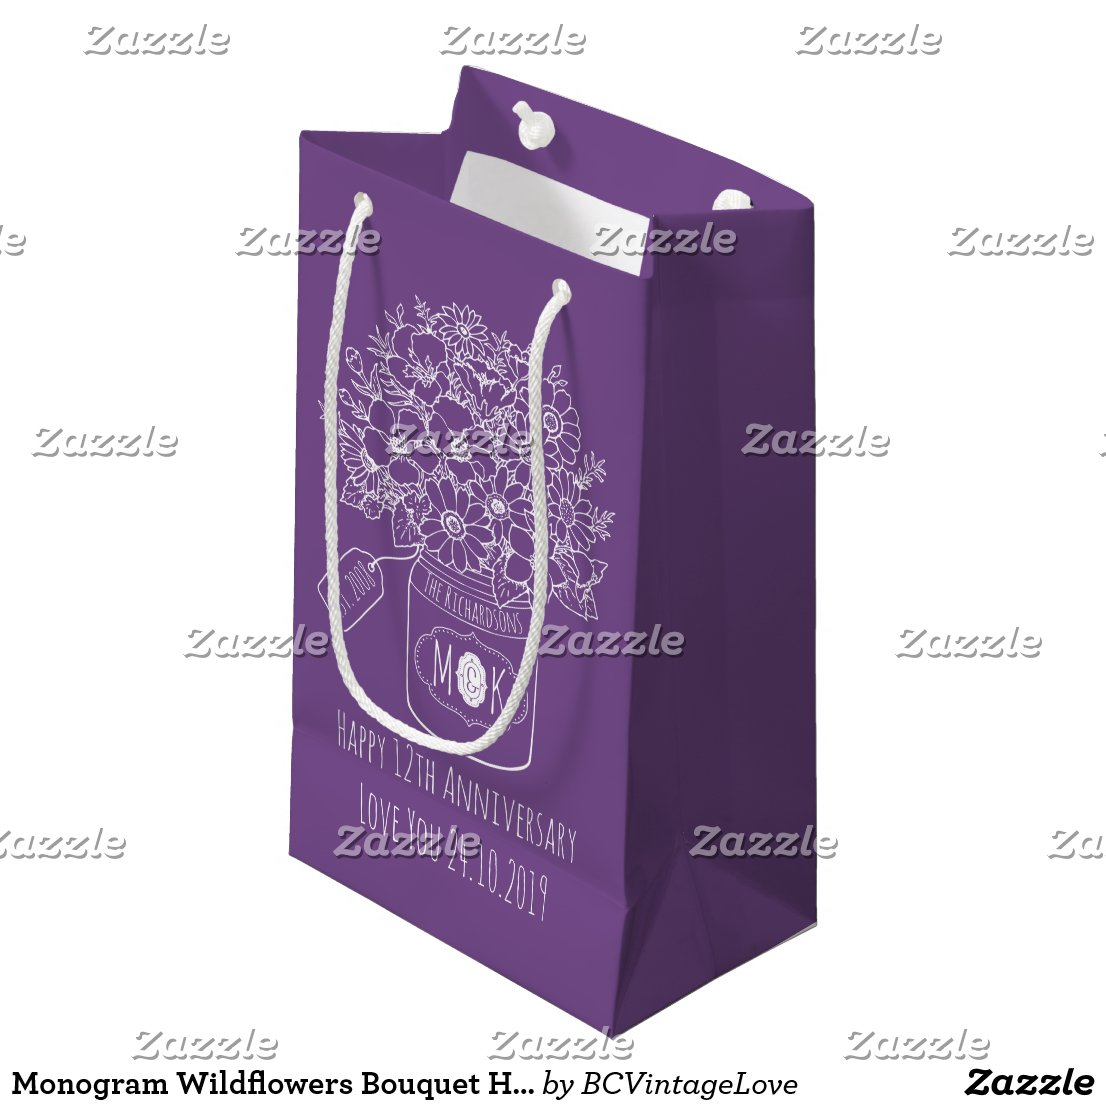 Monogram Wildflowers Bouquet Hand-Drawn Mason Jar Small Gift Bag